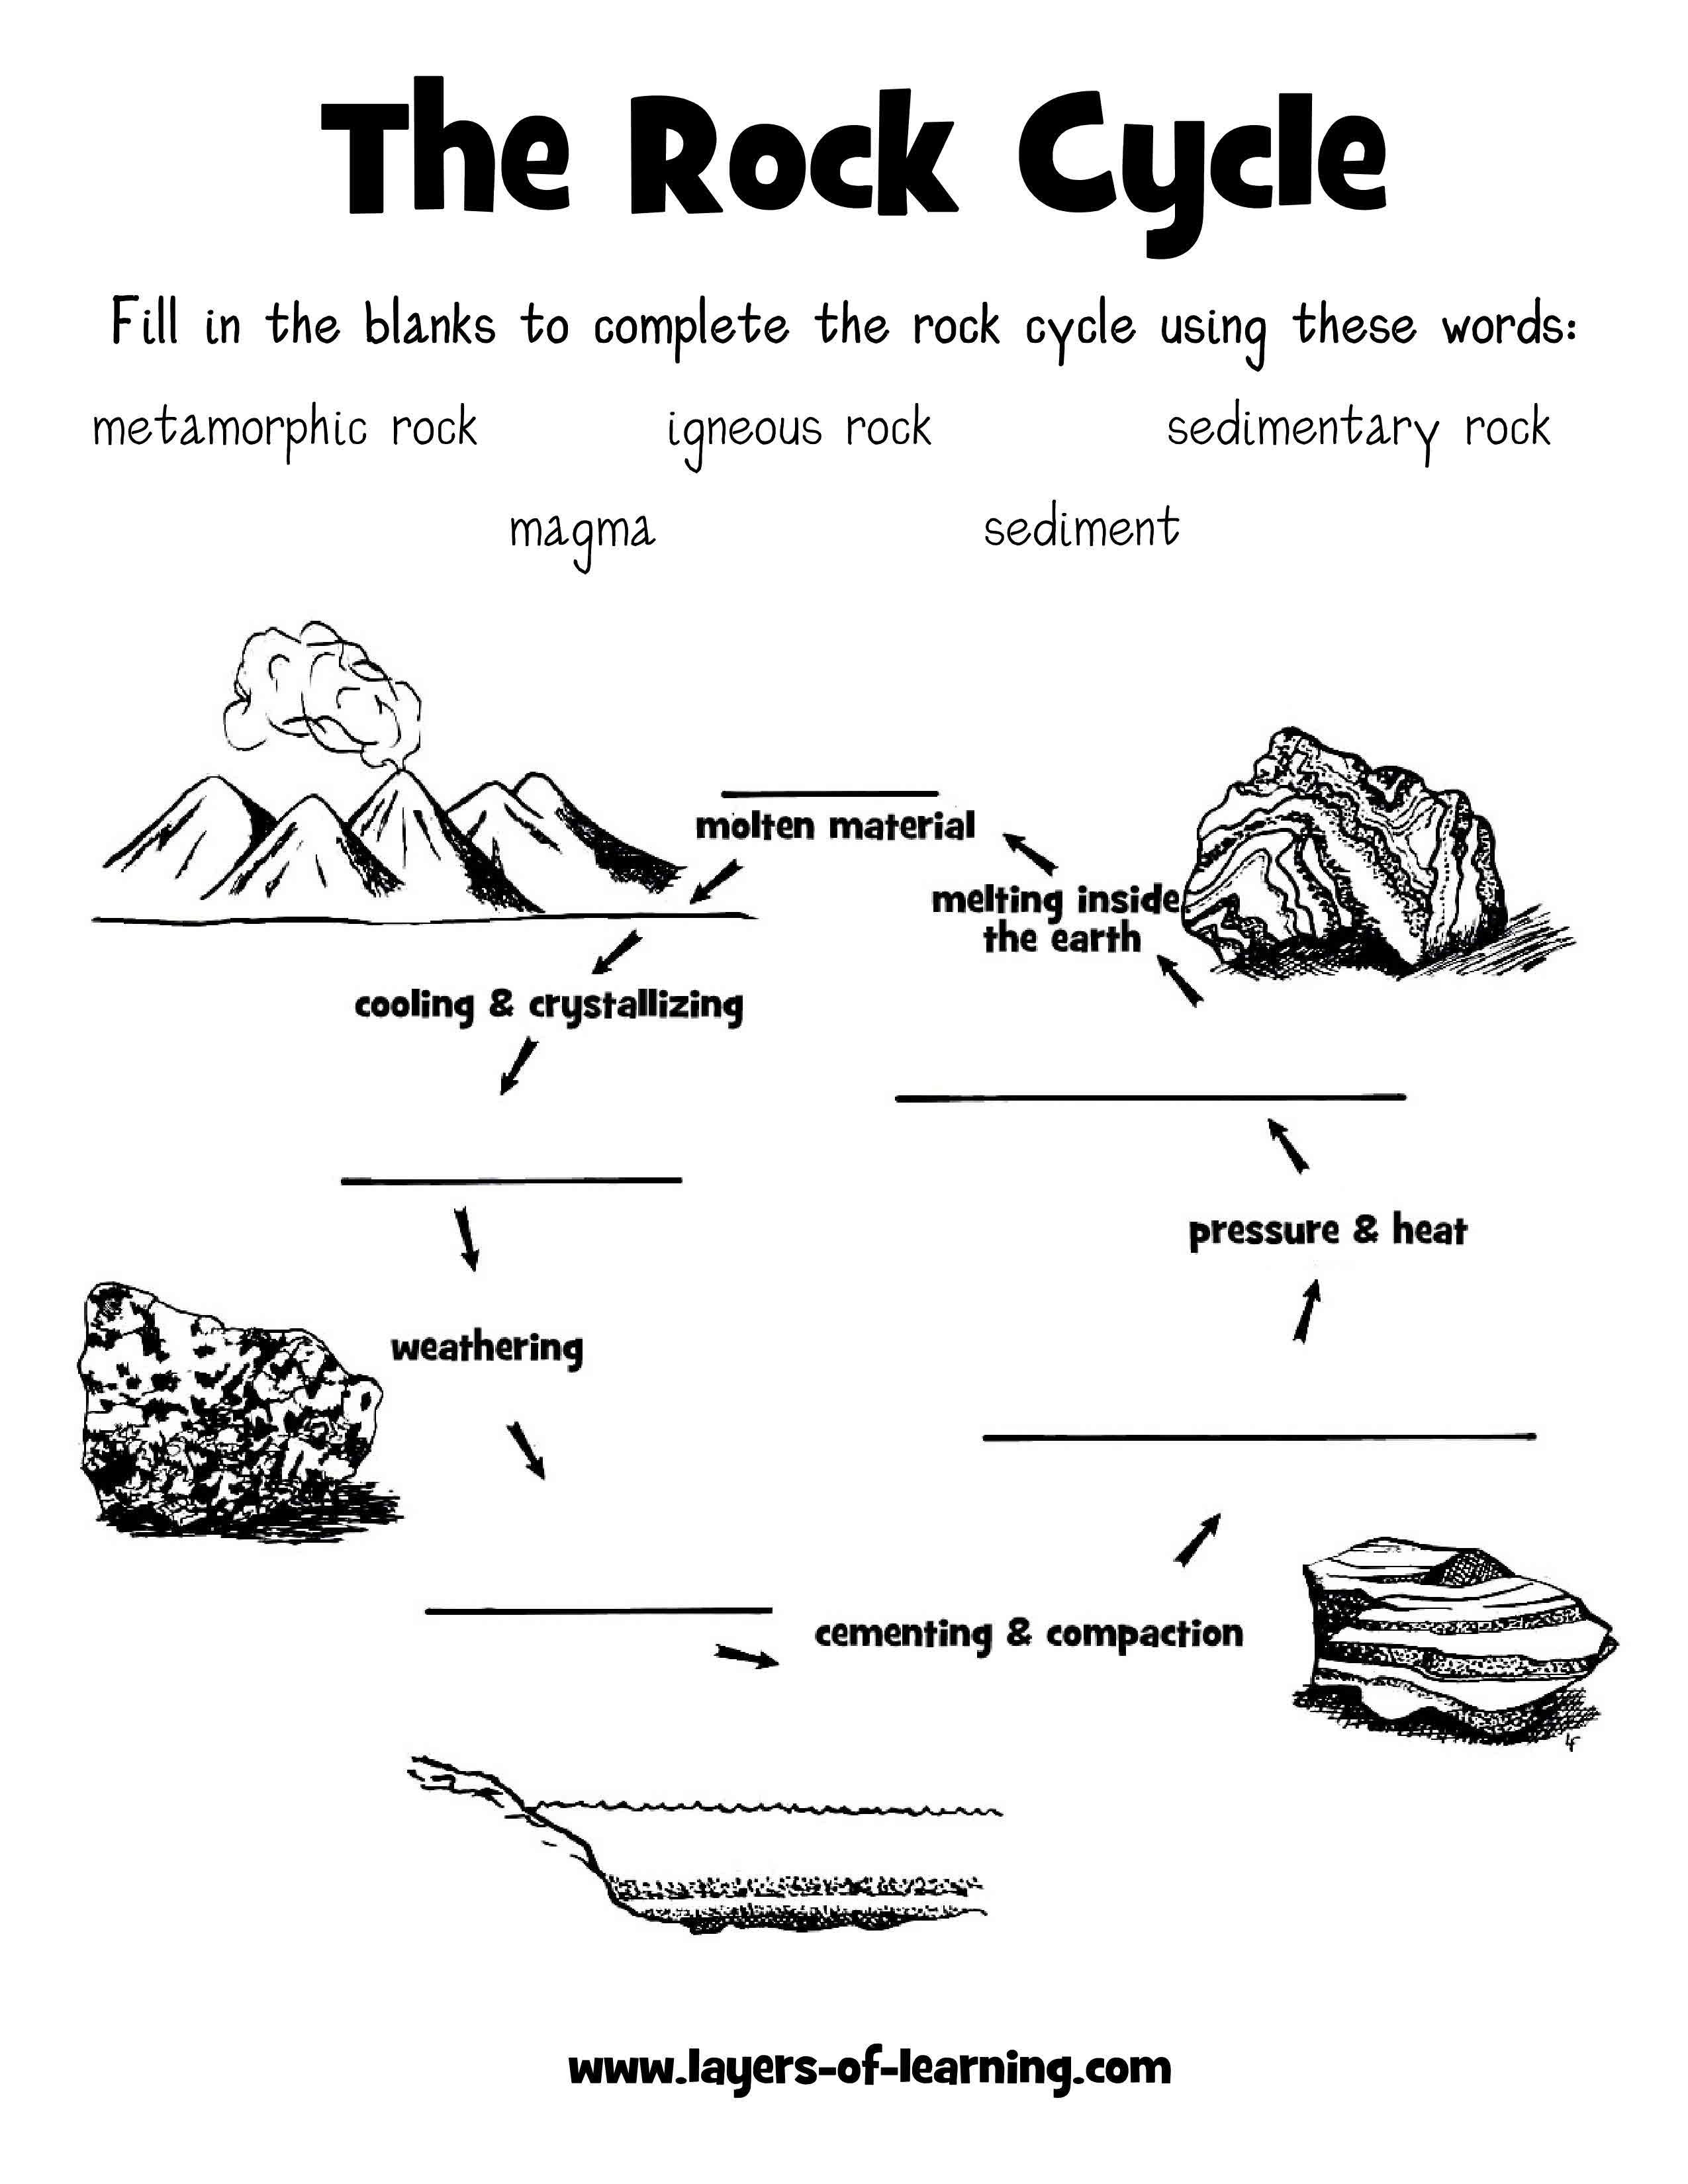 rock cycle worksheet - Layers of Learning   Earth science lessons [ 3300 x 2550 Pixel ]